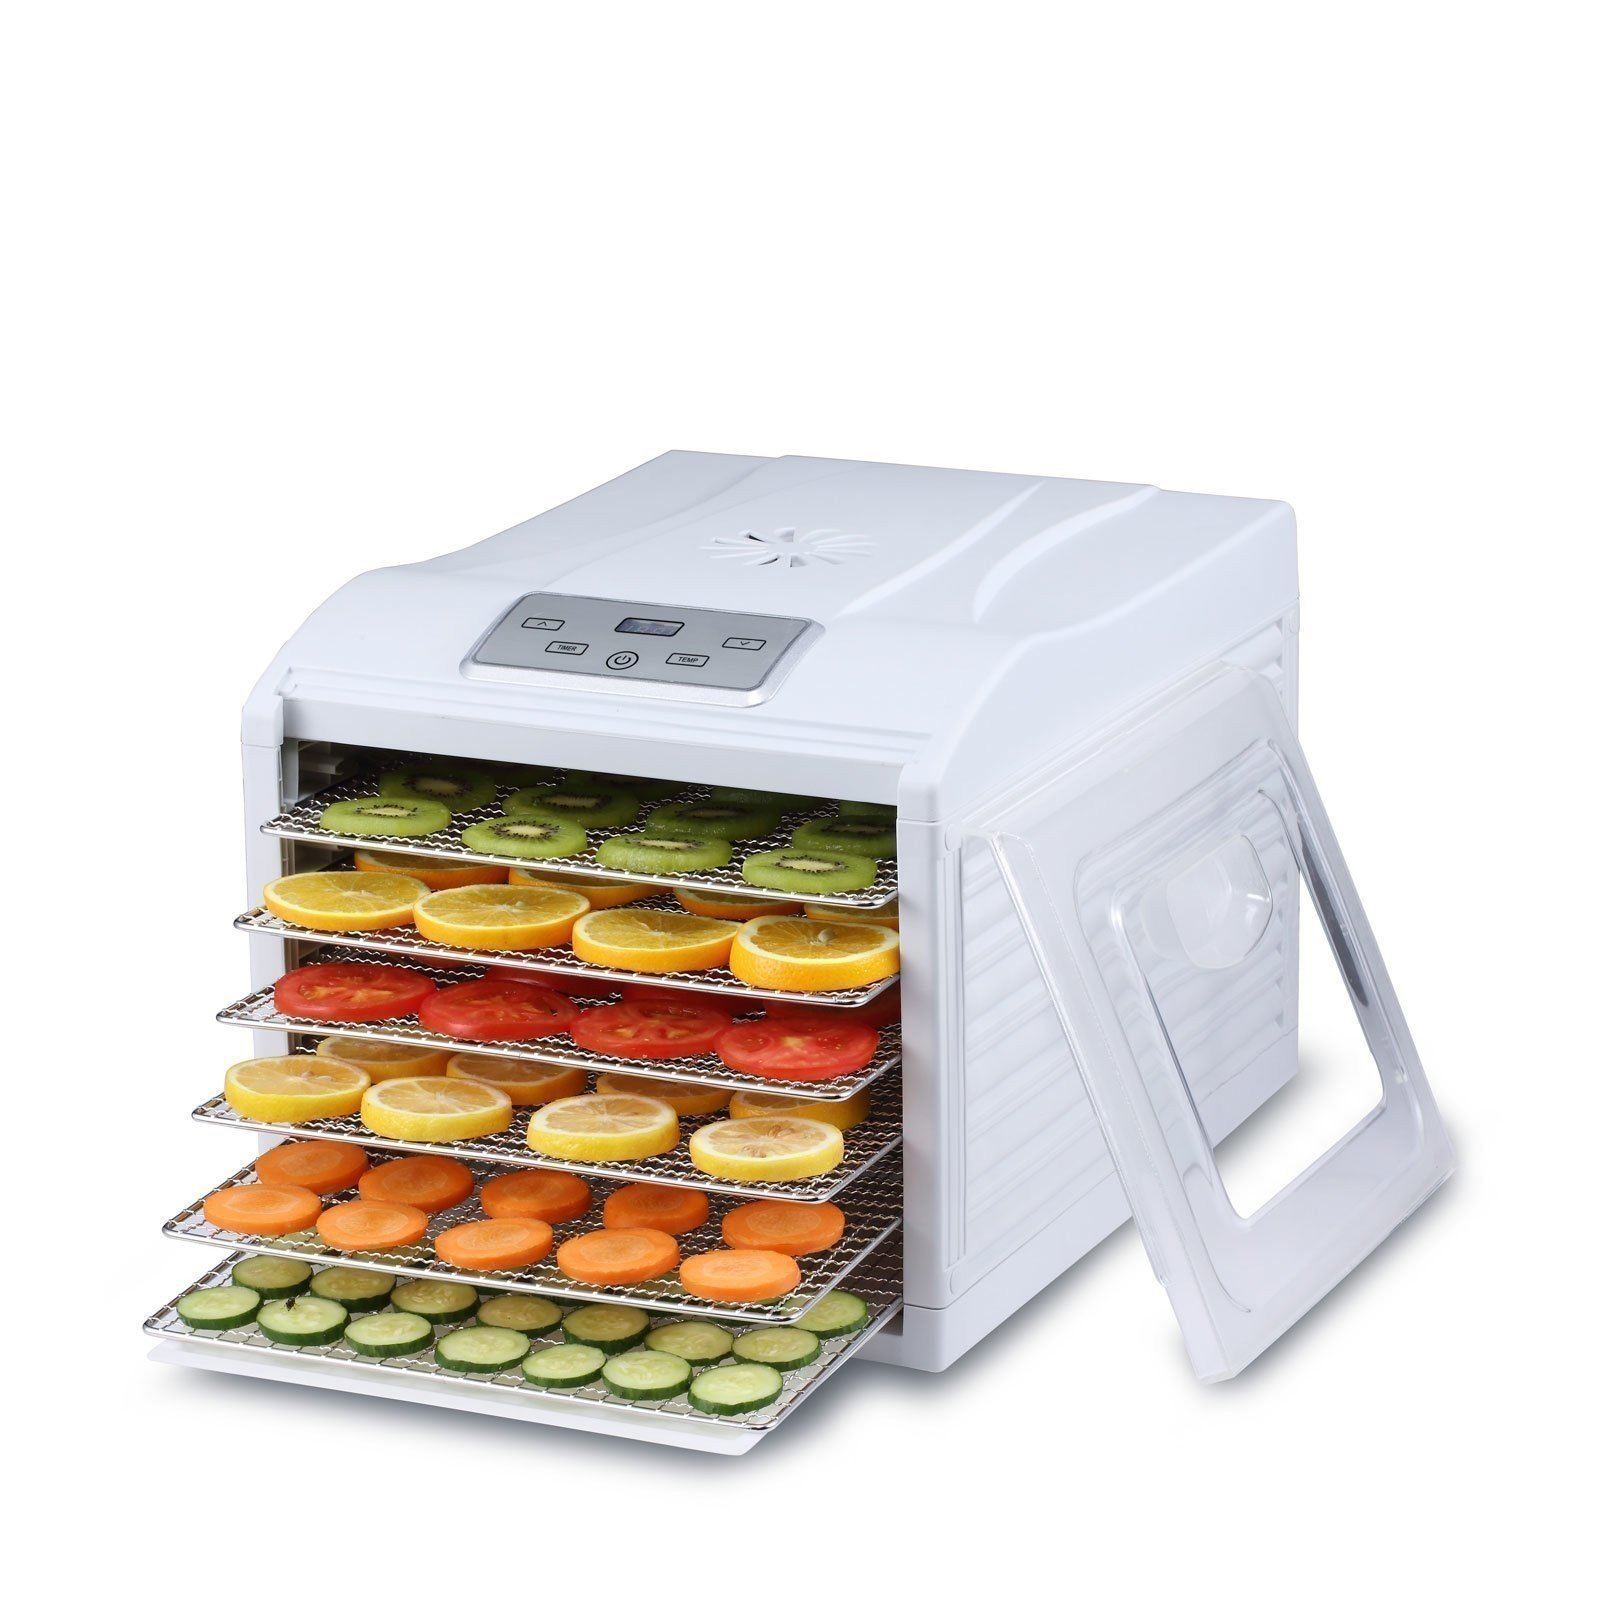 DEMO BioChef Arizona Sol 6 Tray Food Dehydrator